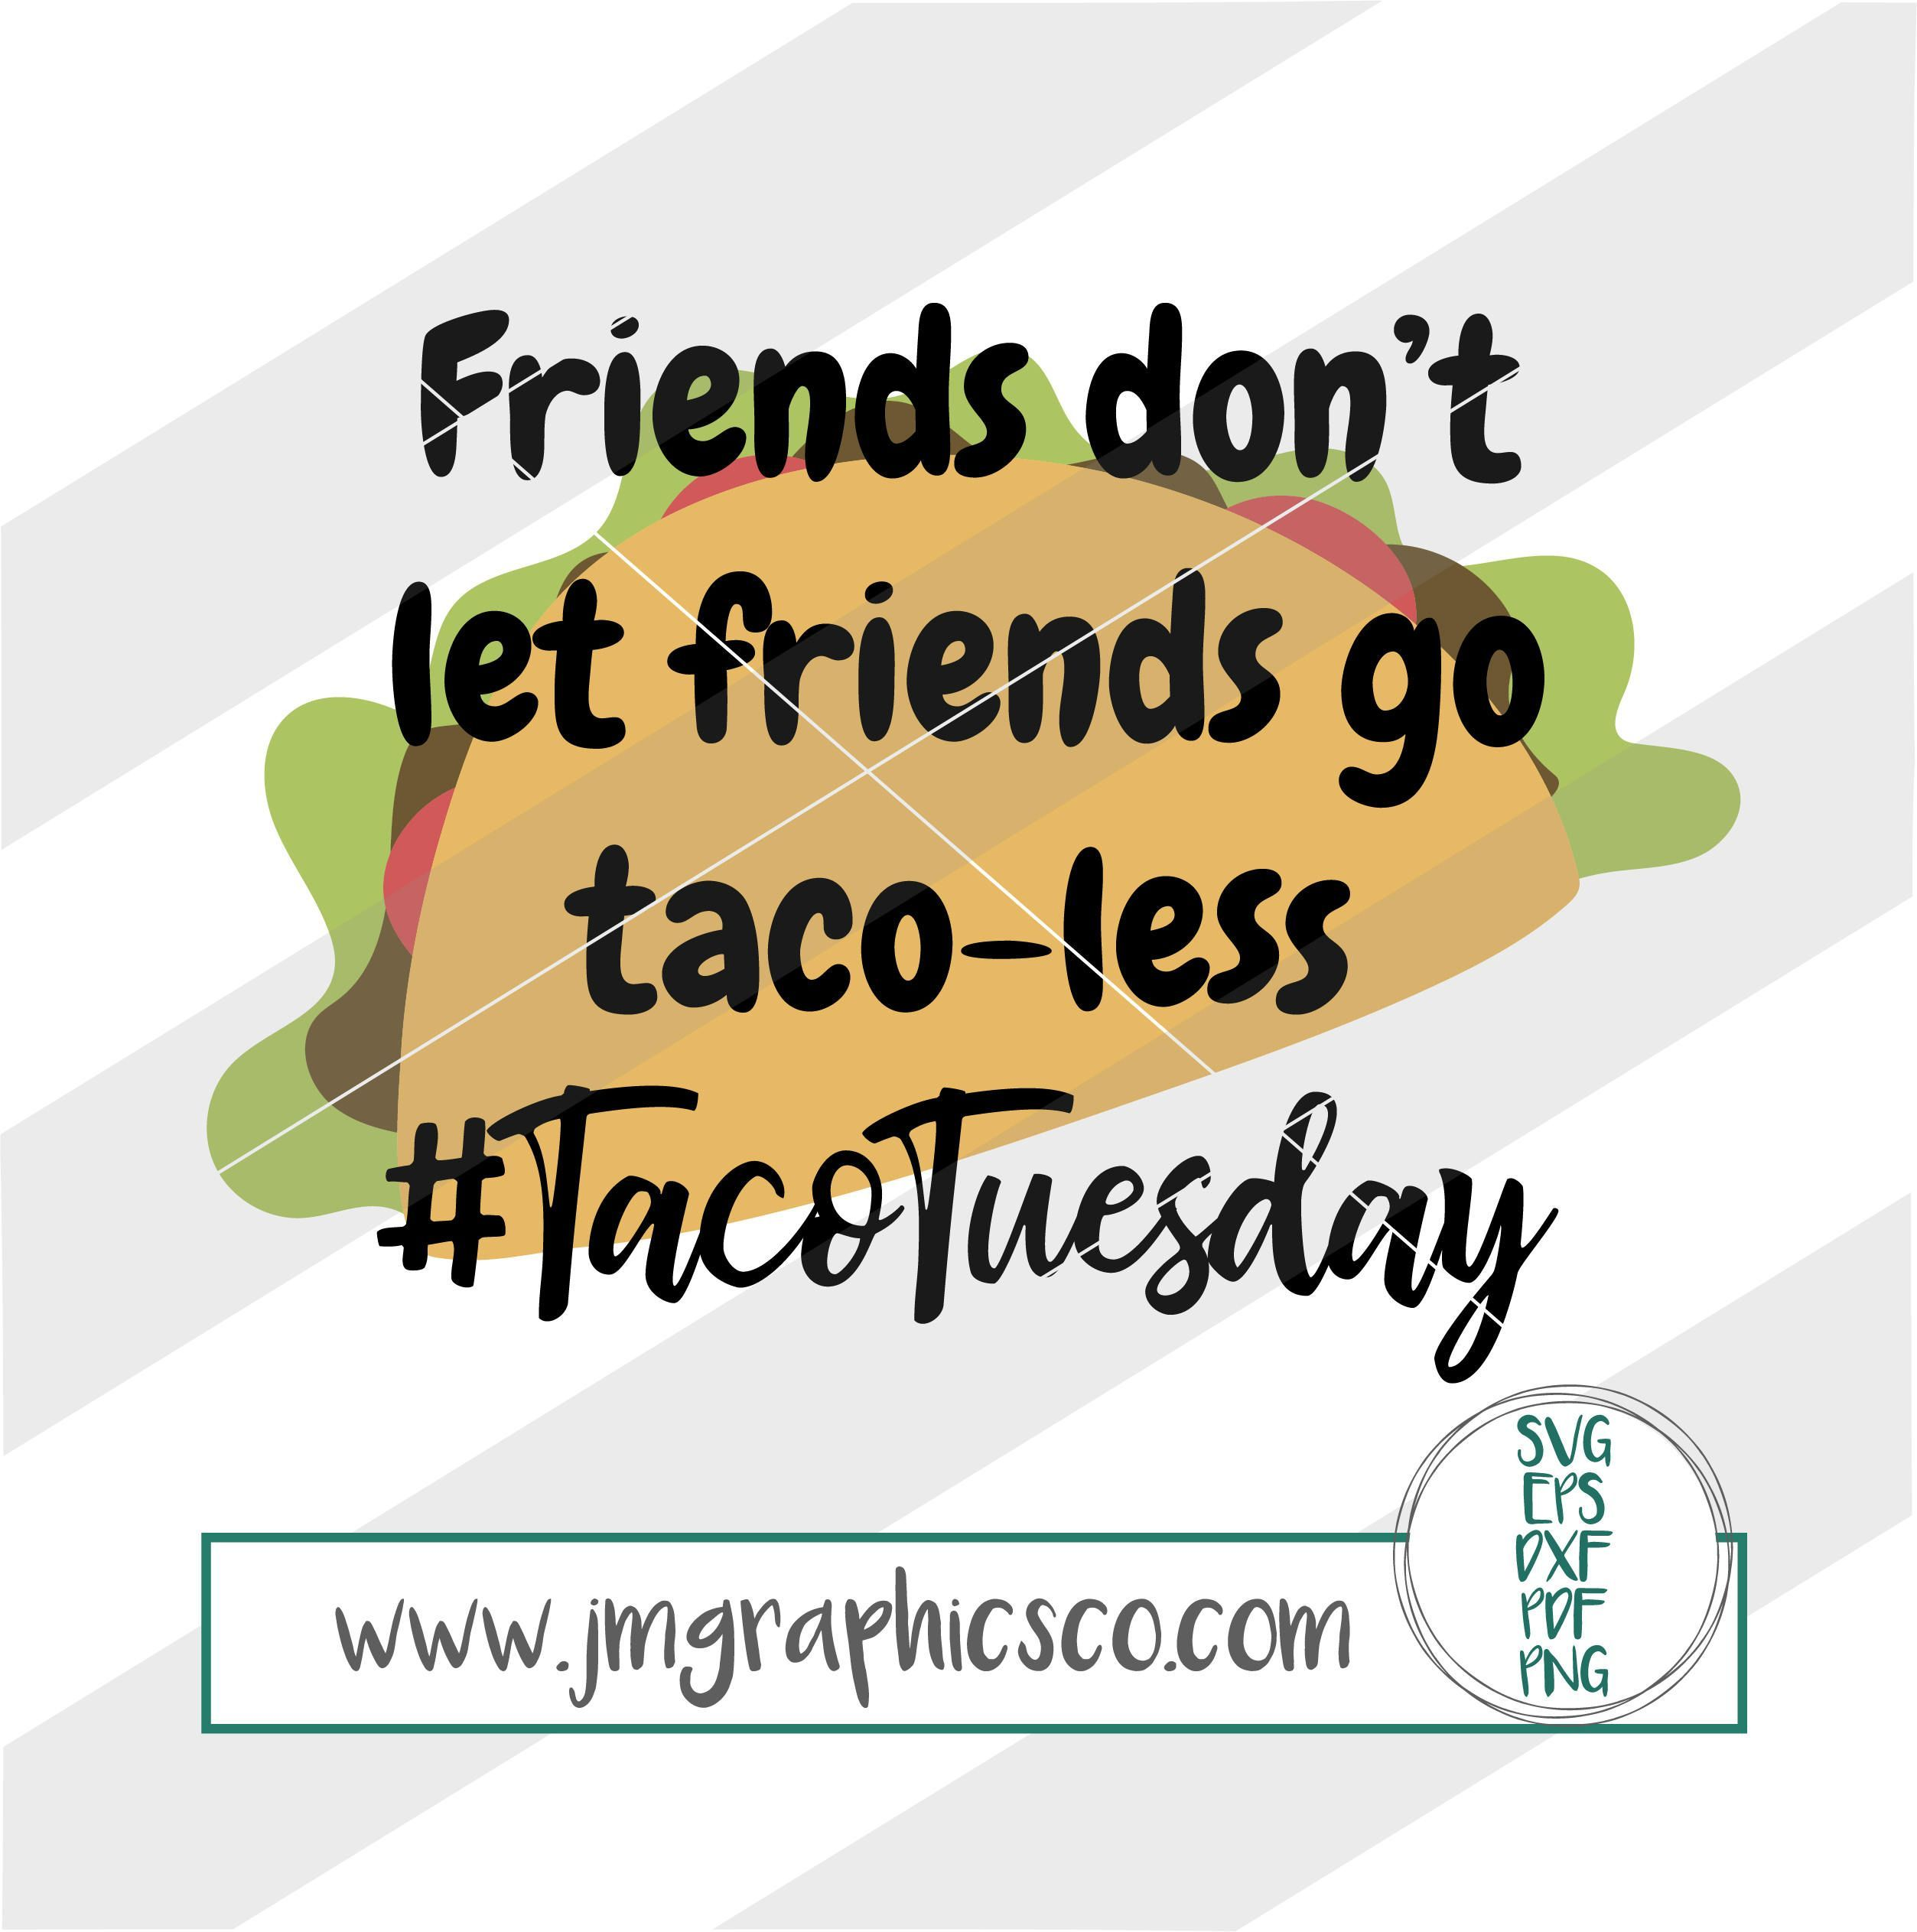 Pin by freedom on T Shirt Ideas | Taco tuesdays funny ...